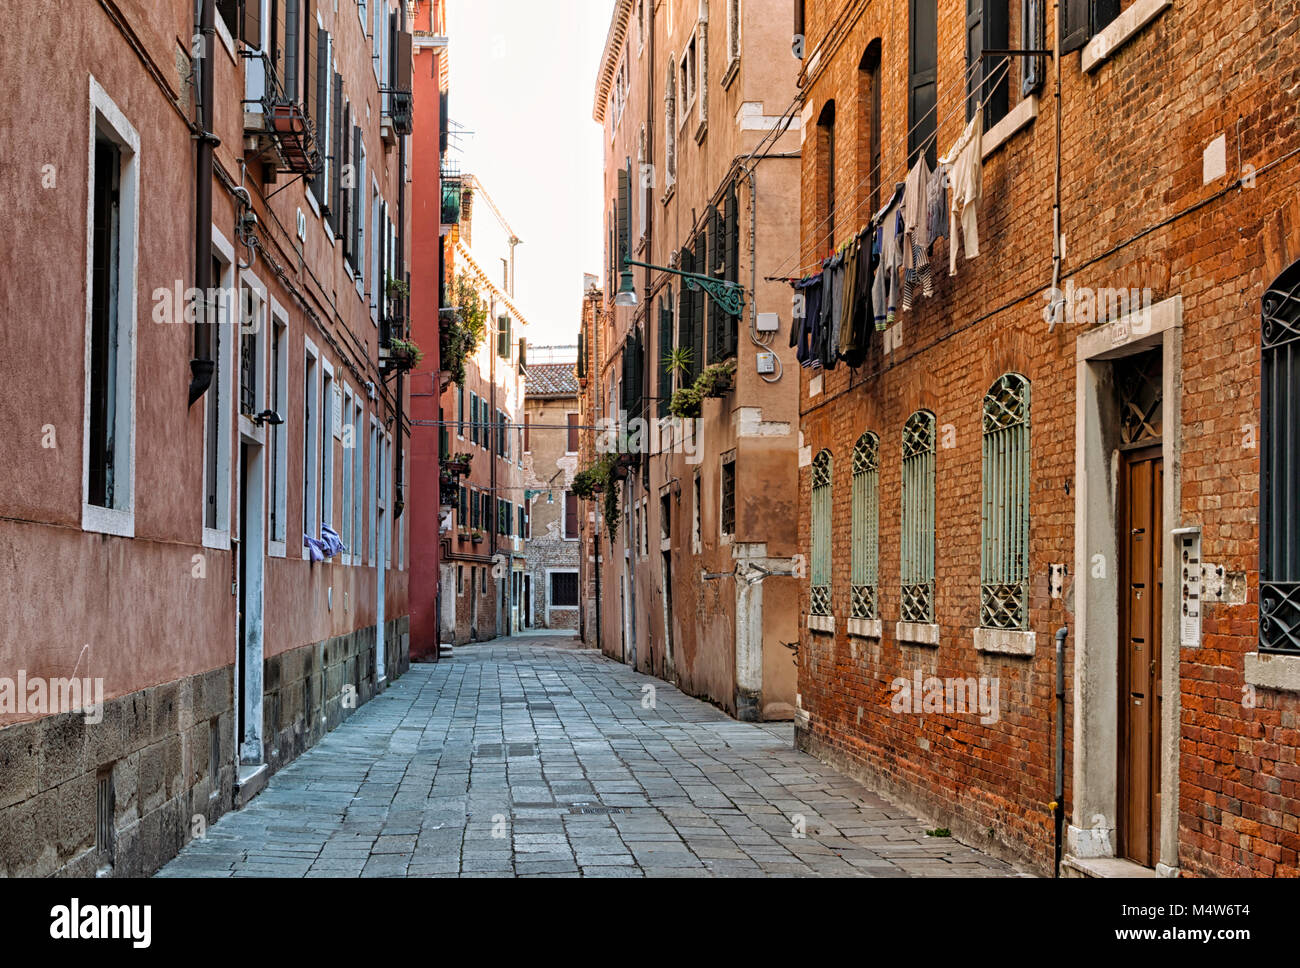 Typical old empty halley in the city of Venice, Italy. - Stock Image